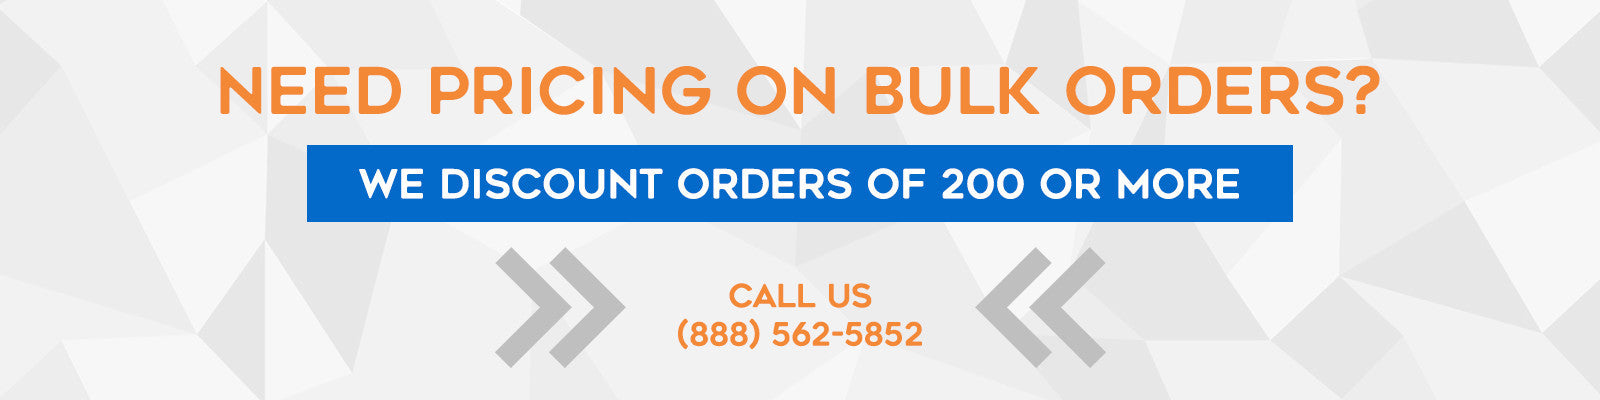 Contact us for Bulk Order Discounts: 888-562-5852